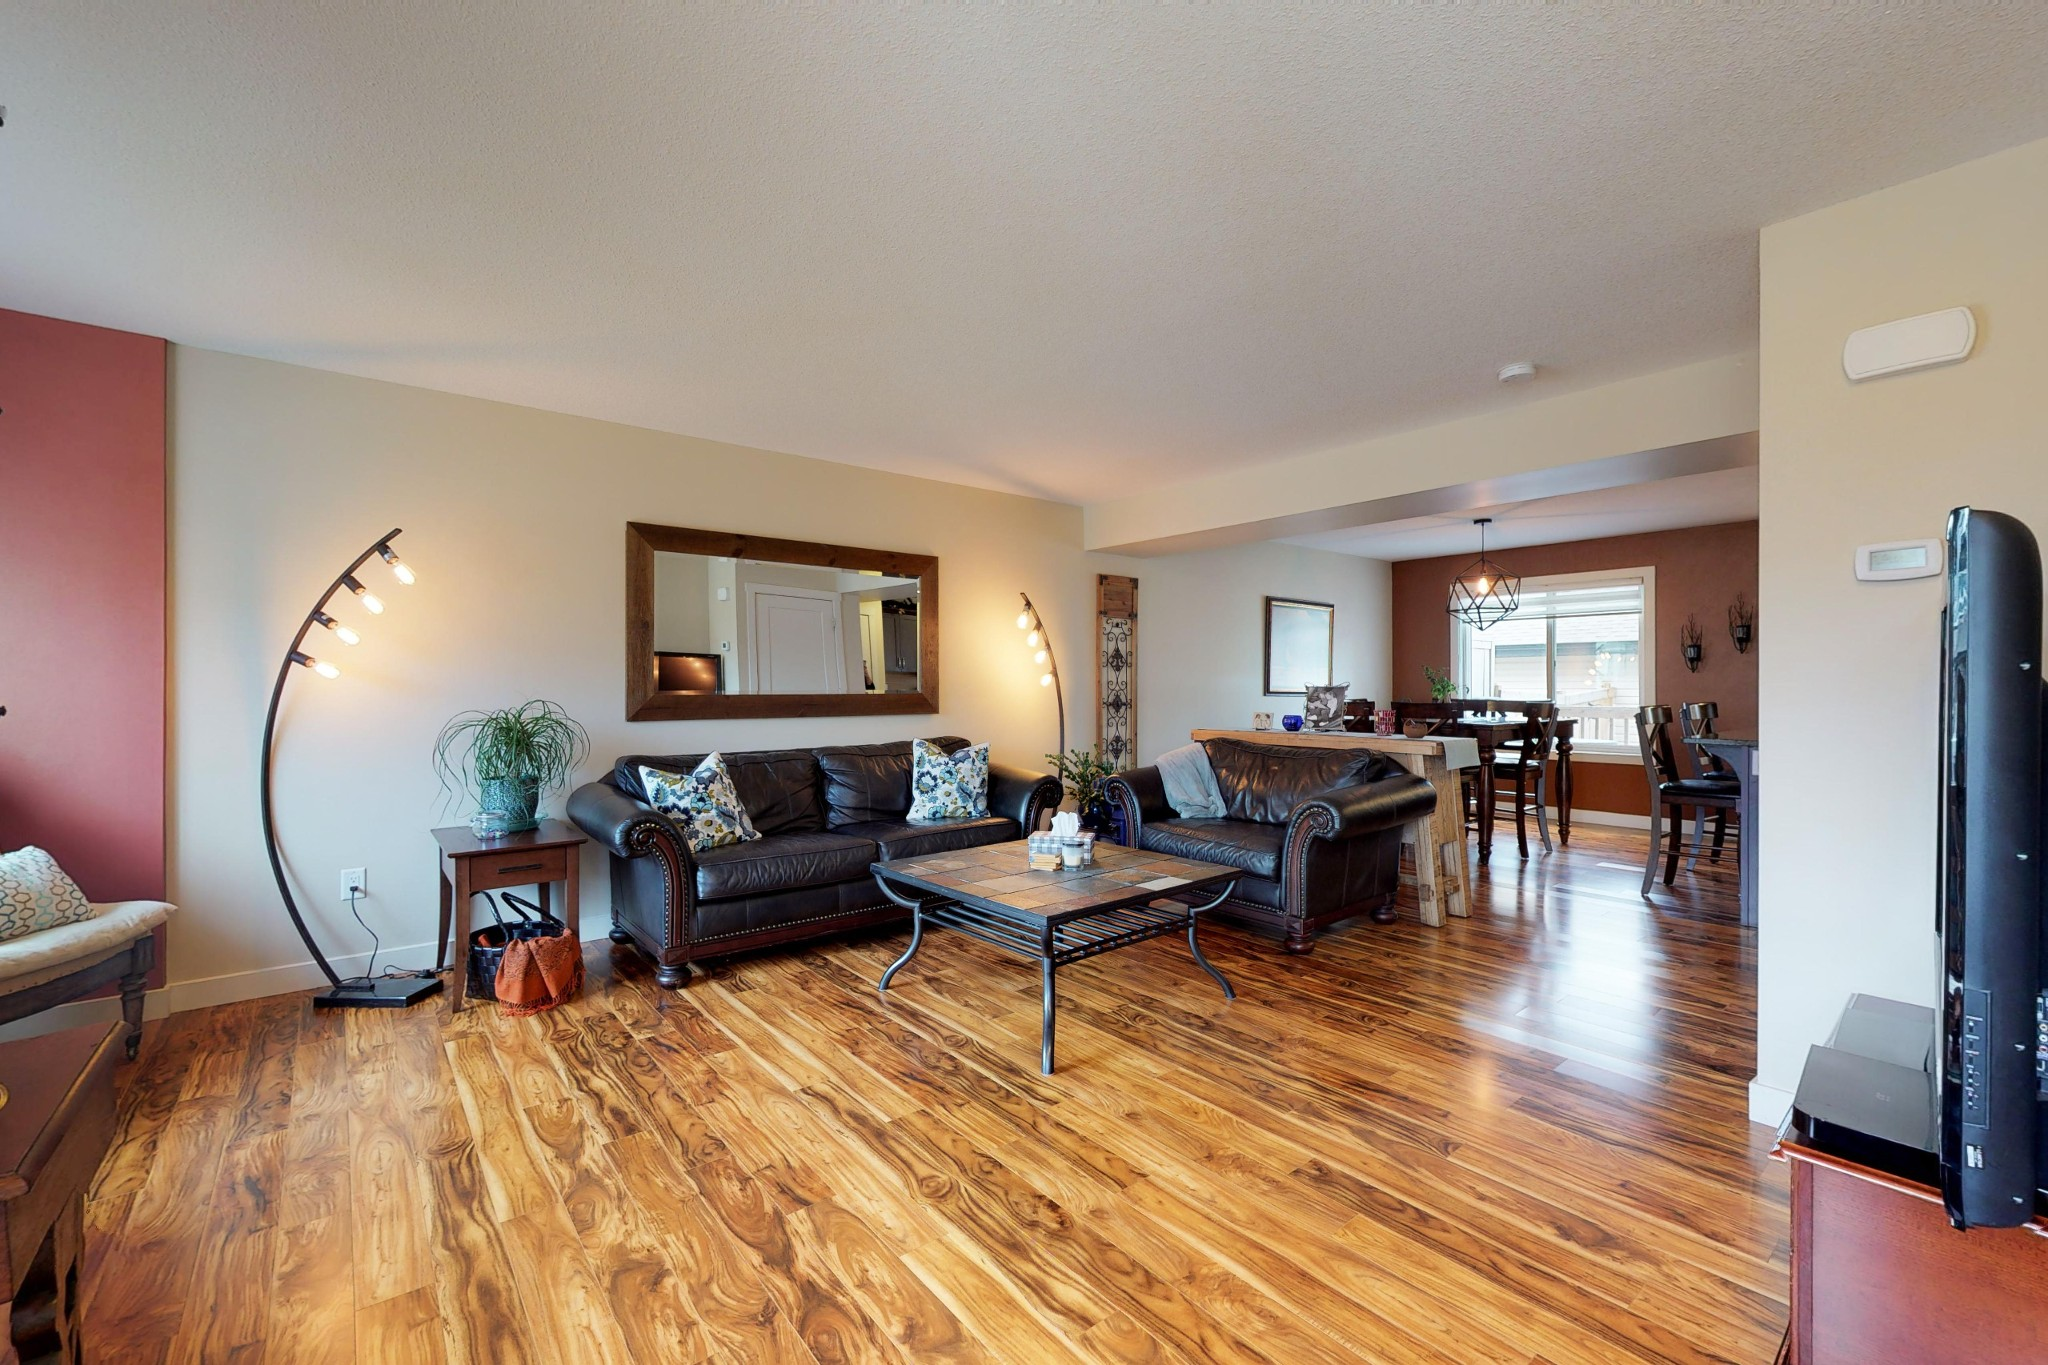 FEATURED LISTING: 120 Cy Becker BLVD Edmonton